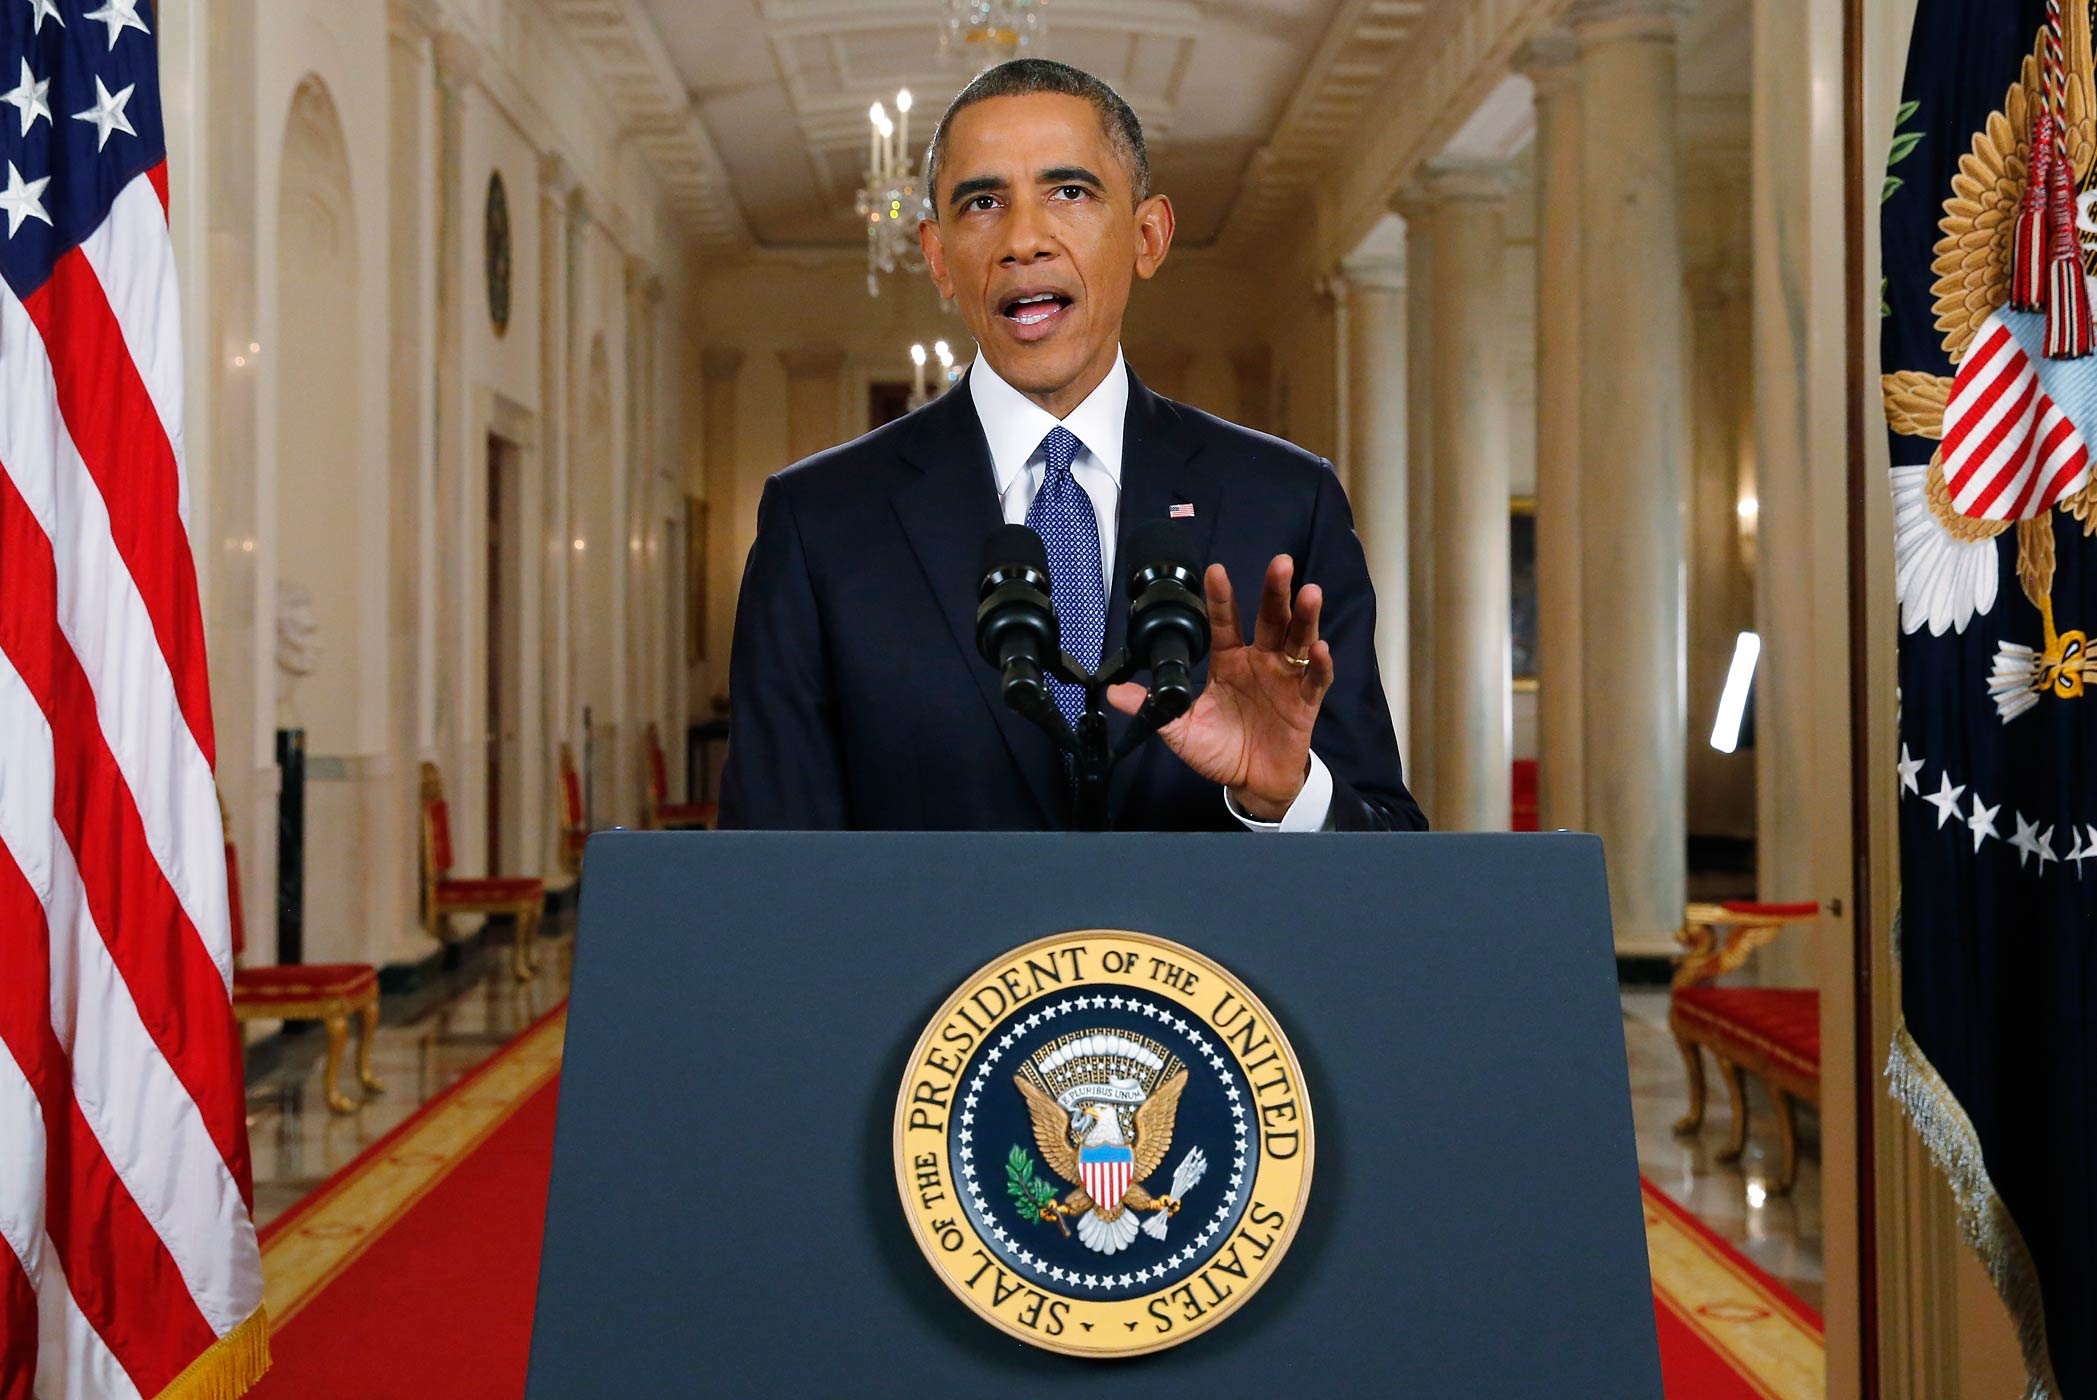 President Barack Obama announces executive actions on immigration during a nationally televised address from the White House in Washington, Thursday, Nov. 20, 2014.